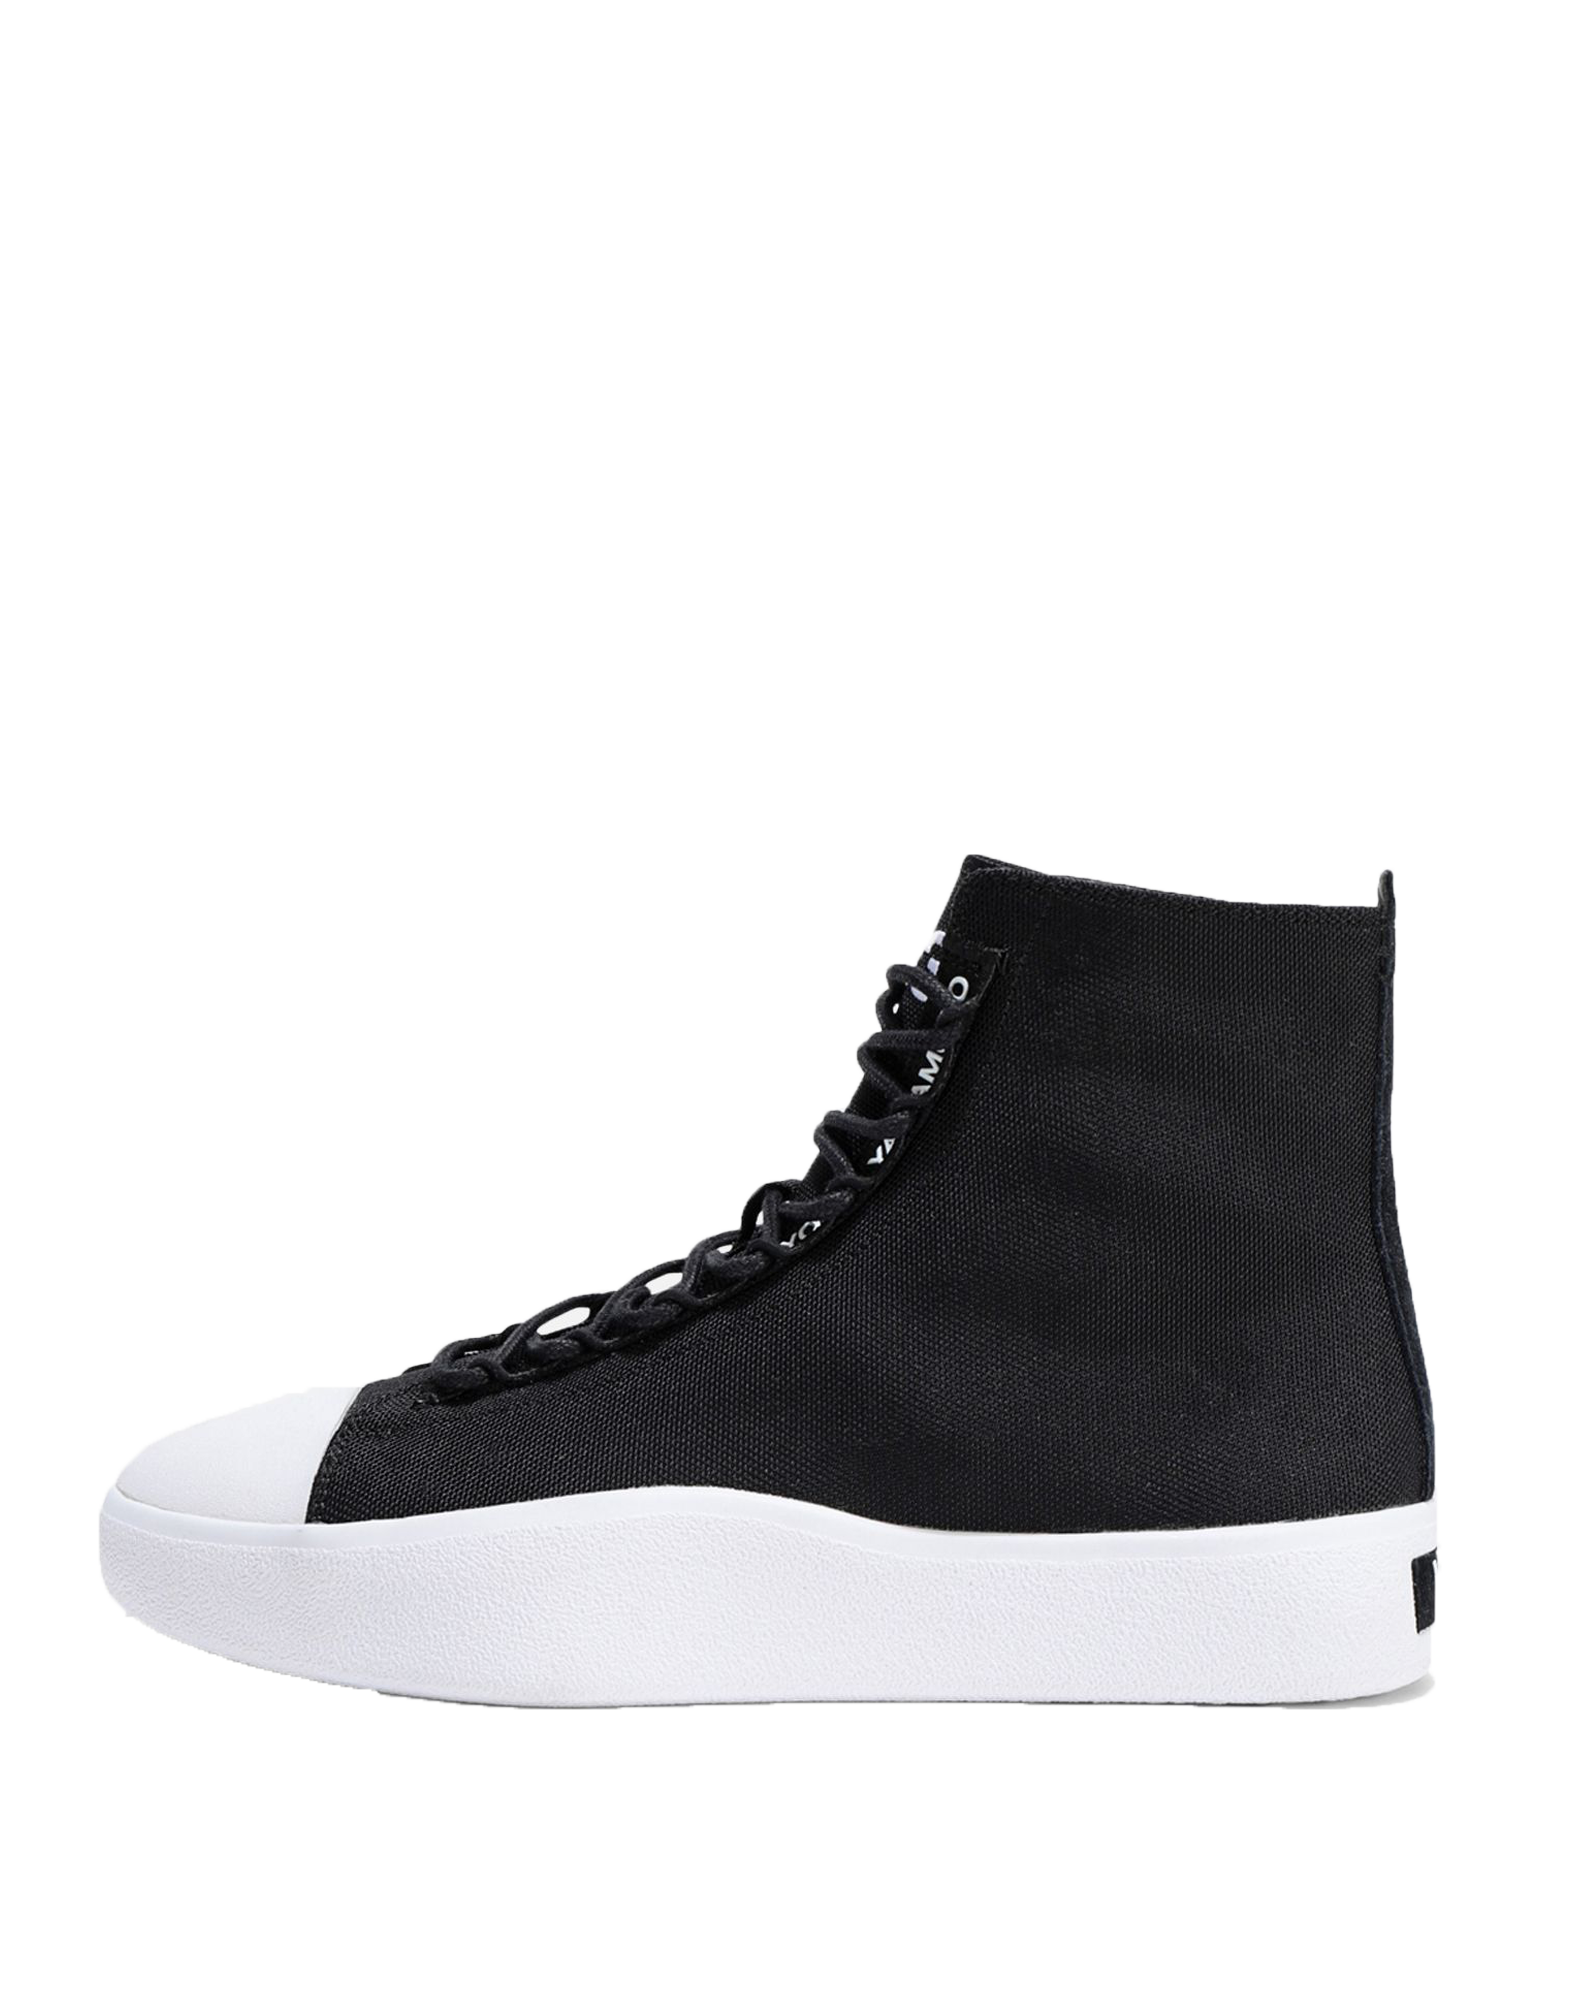 reputable site 7bfc0 41fe2 Y-3 F97503 BASHYO CORE BLACKCORE BLKFTW WHITE